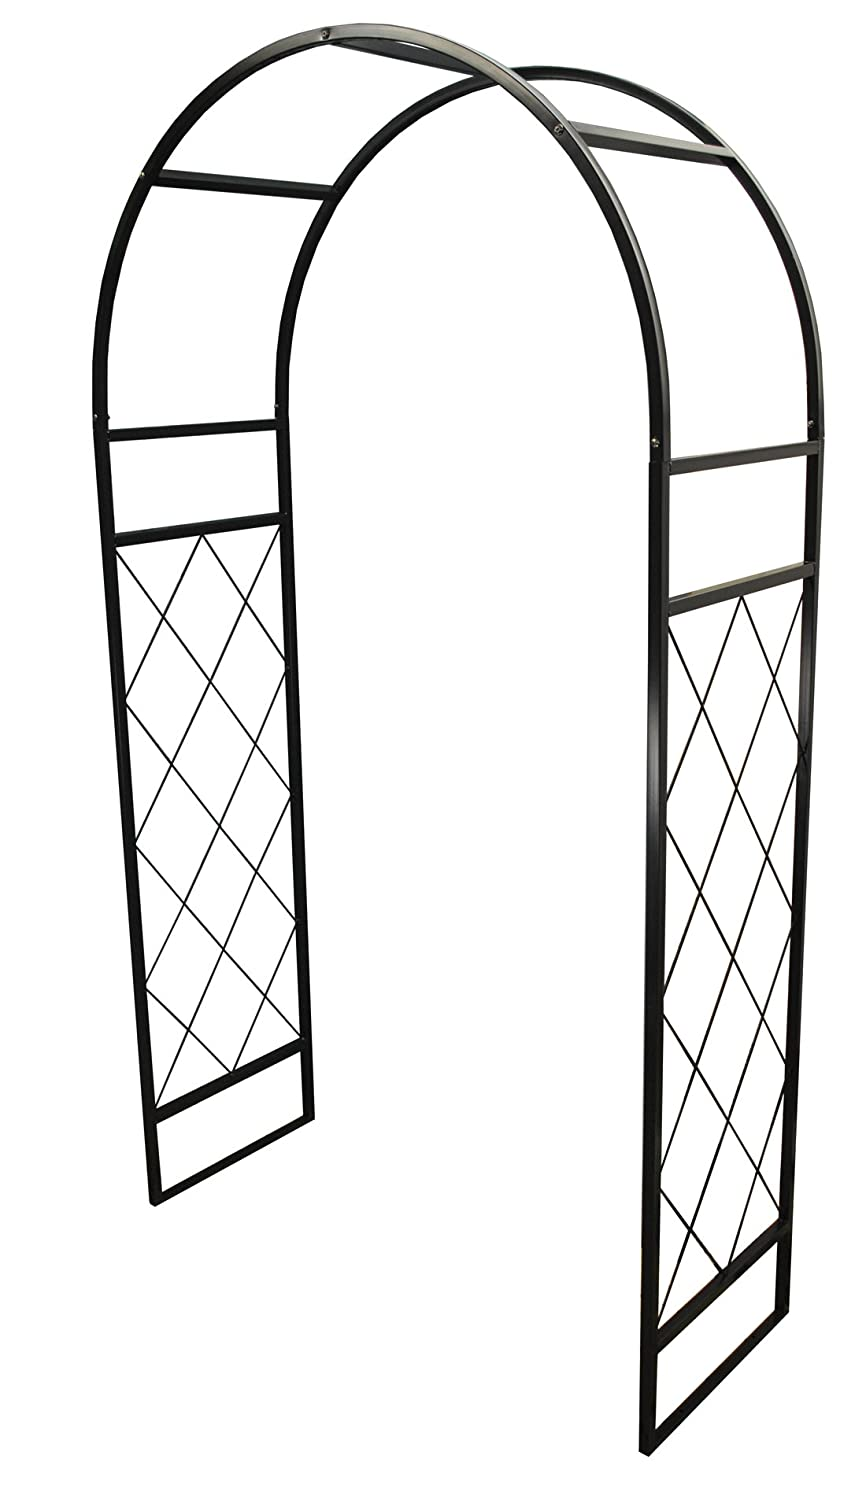 Selections Metal Knightsbridge Garden Arch with 4 Ground Anchors